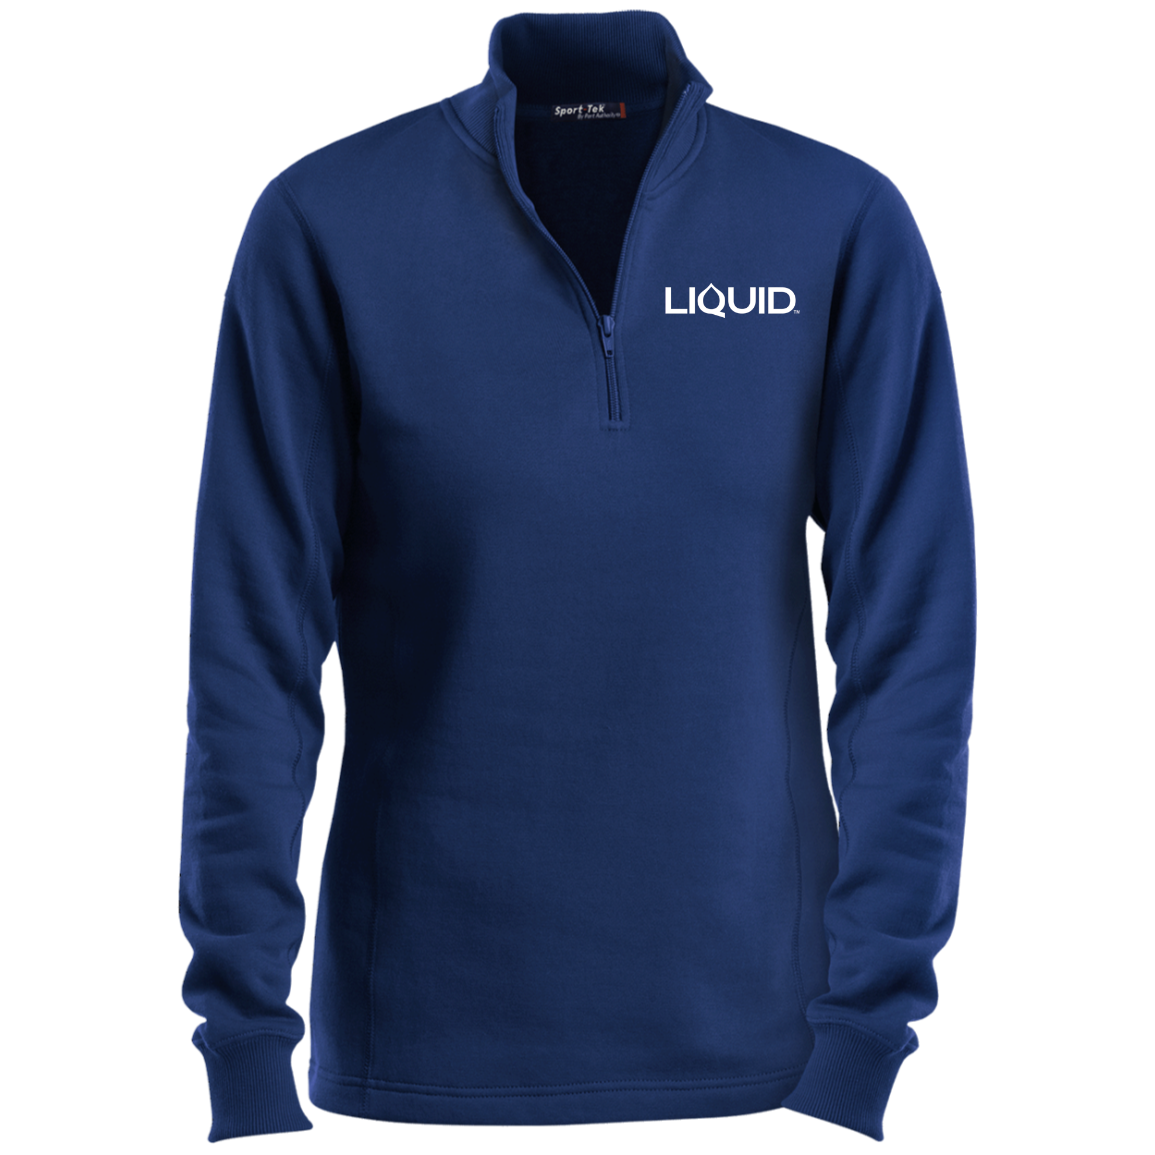 LST253 Ladies' 1/4 Zip Sweatshirt - Liquid Hydration Gear